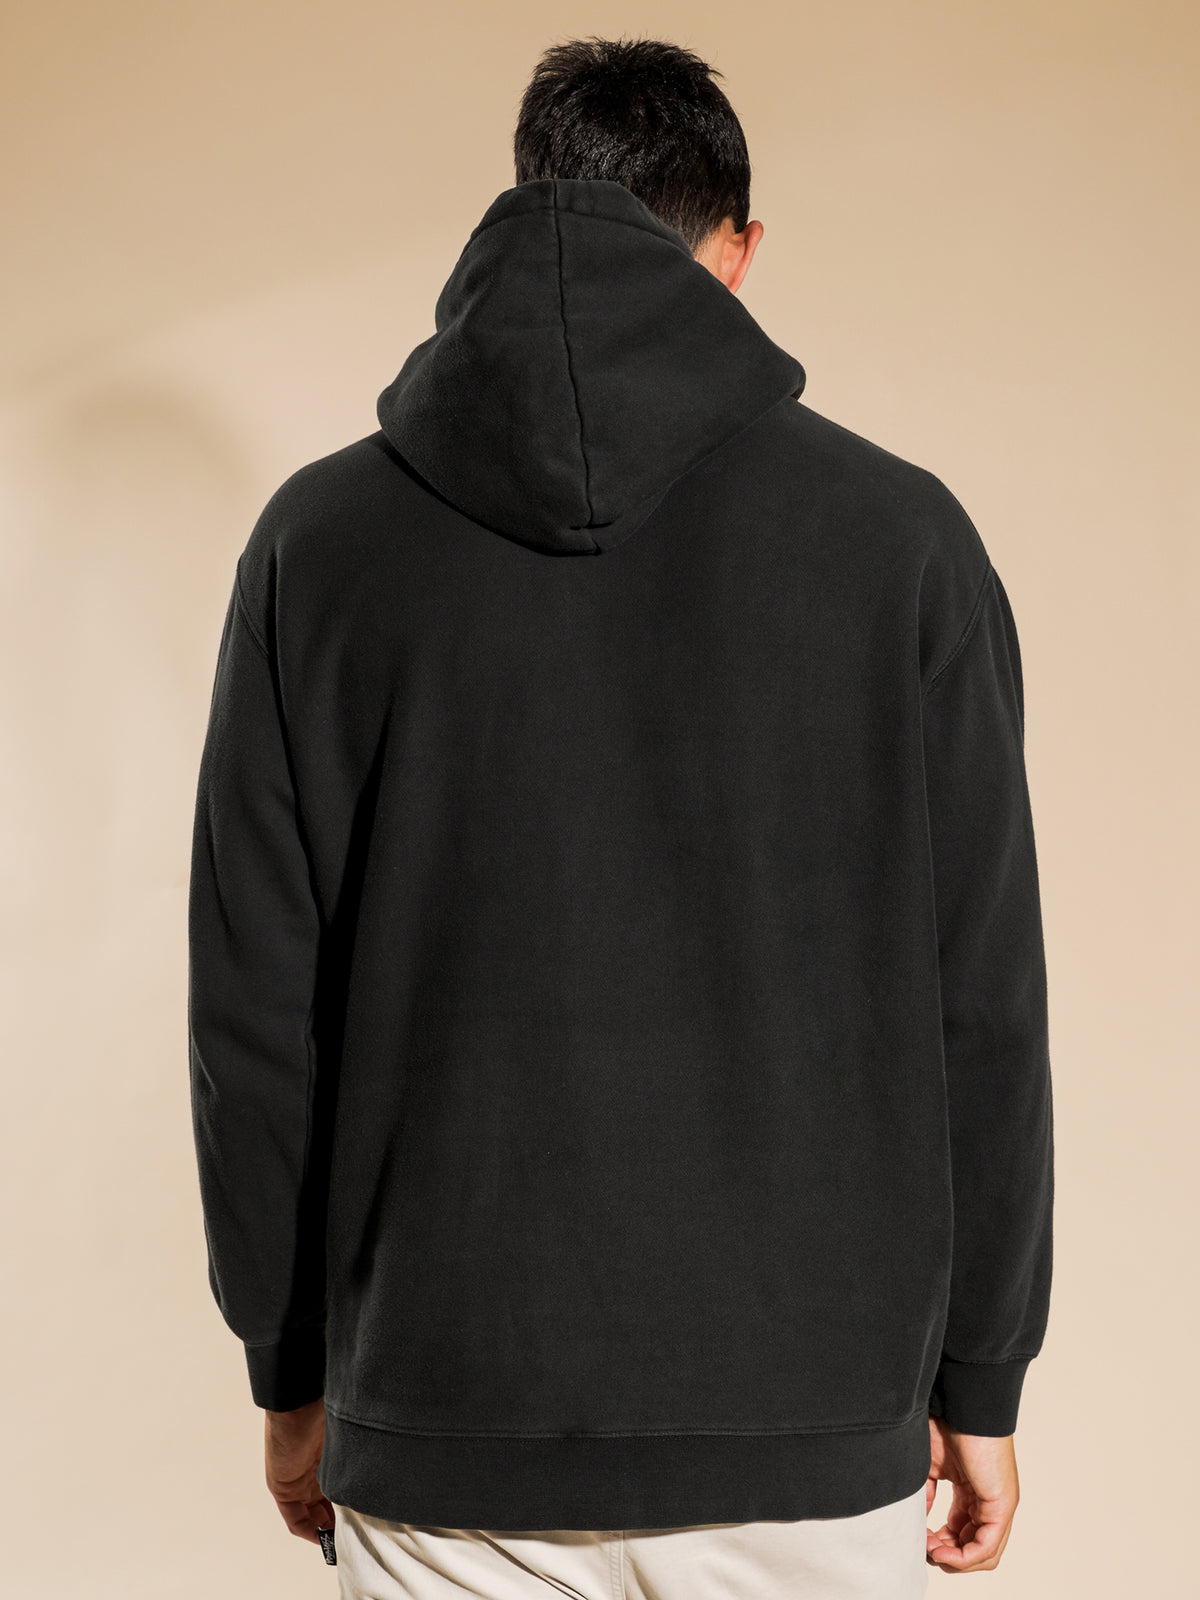 Stock Hood in Pigment Black